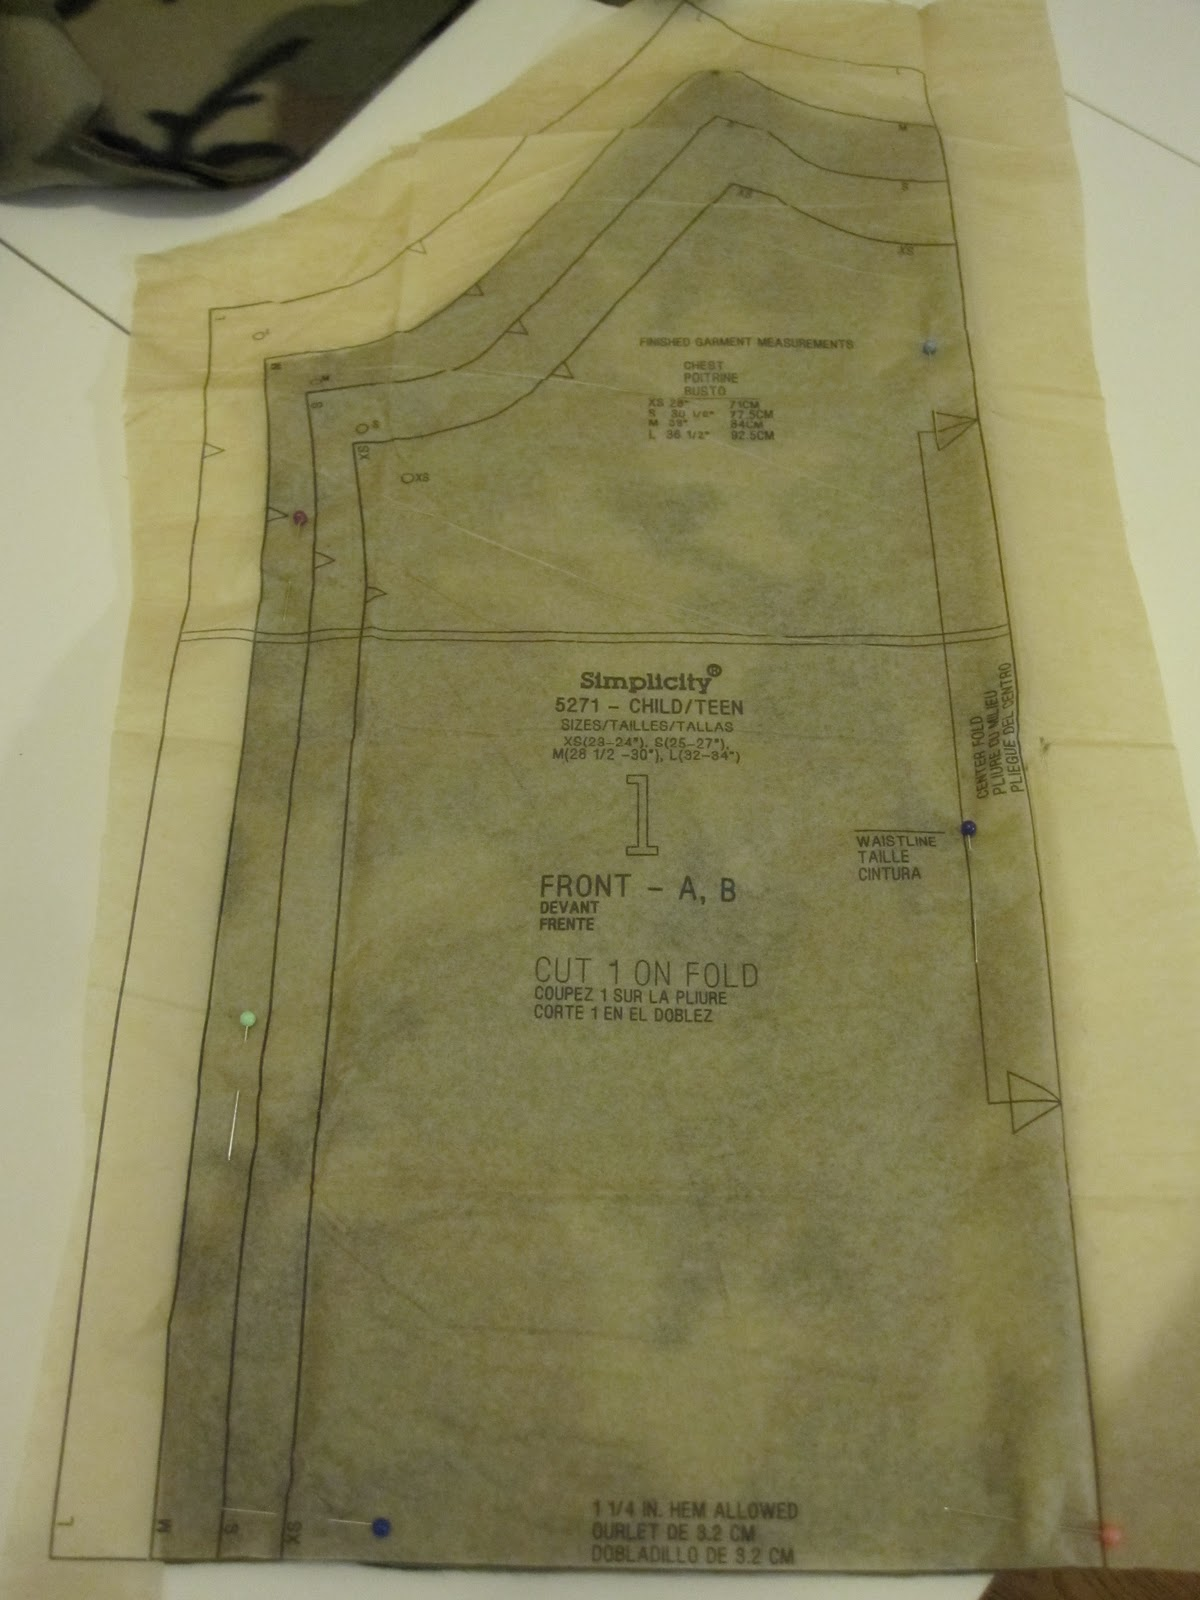 Beckys blabber how to cut different sizes from one sewing pattern you could cut the smaller size and tape it back together or buy multiple patterns or trace the different sizes onto a new sheet of tracing paper jeuxipadfo Image collections